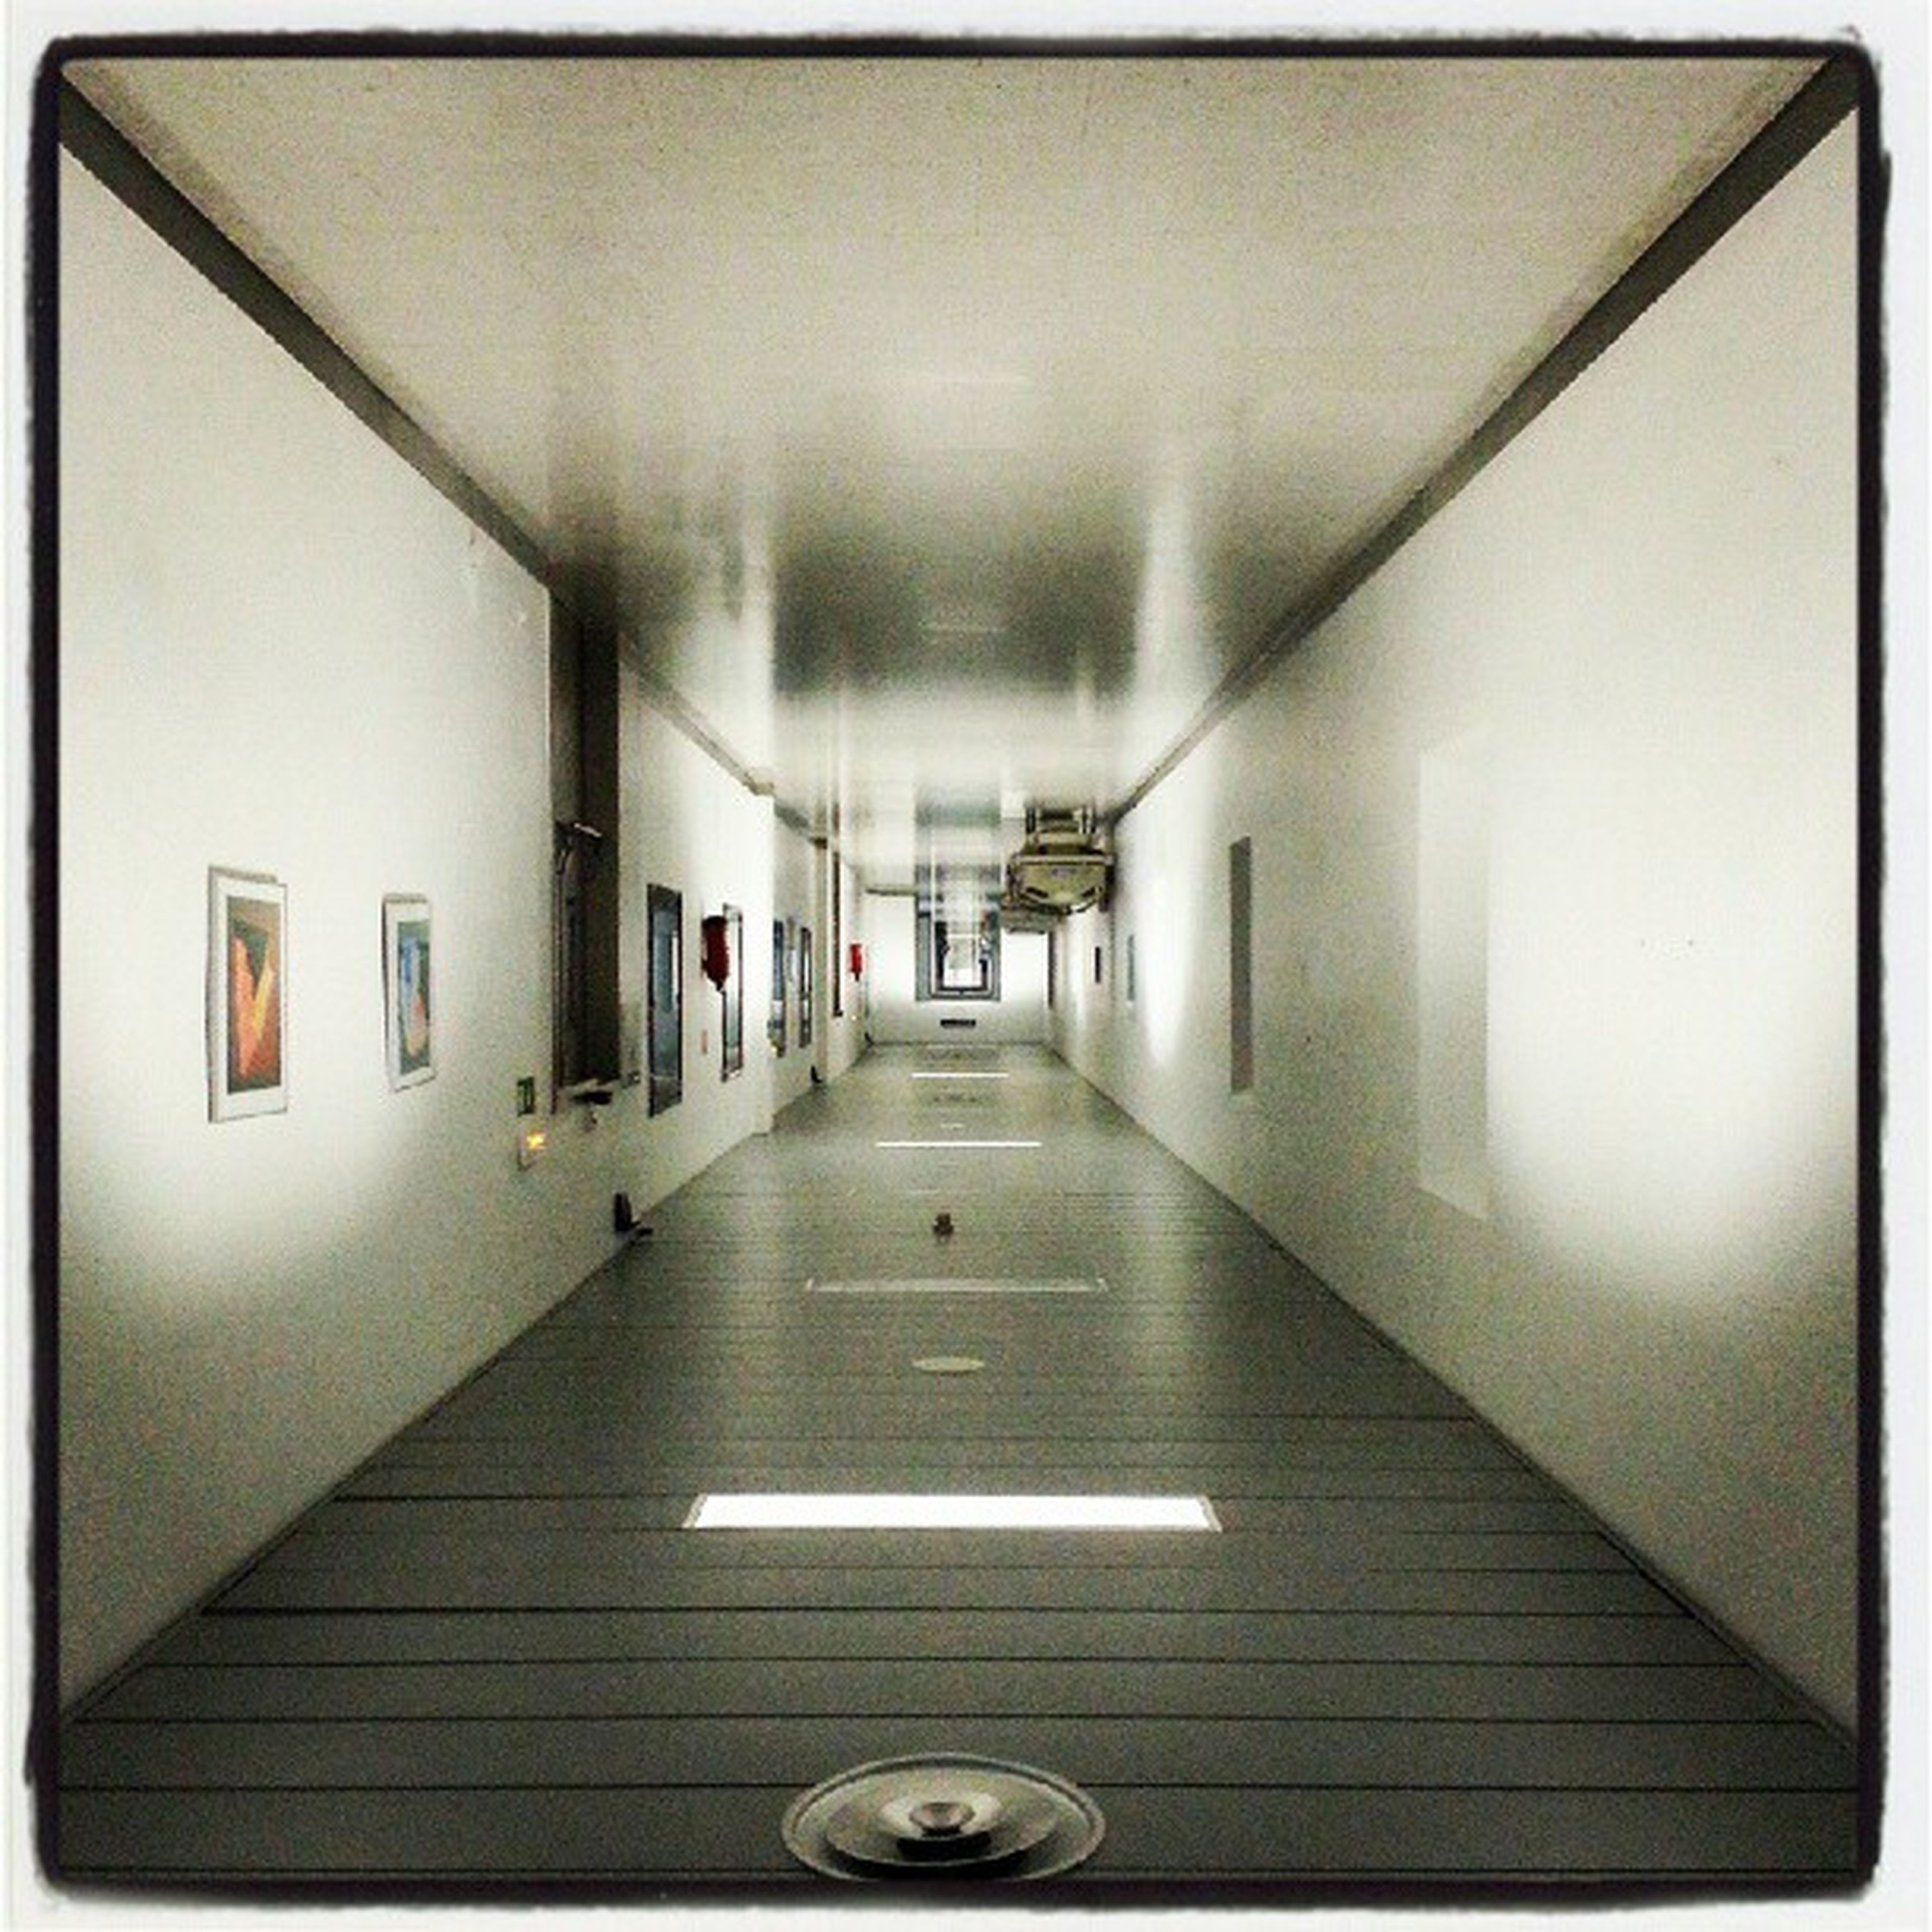 indoors, corridor, illuminated, ceiling, the way forward, architecture, built structure, lighting equipment, empty, diminishing perspective, absence, flooring, wall - building feature, door, building, tiled floor, interior, auto post production filter, subway, transfer print